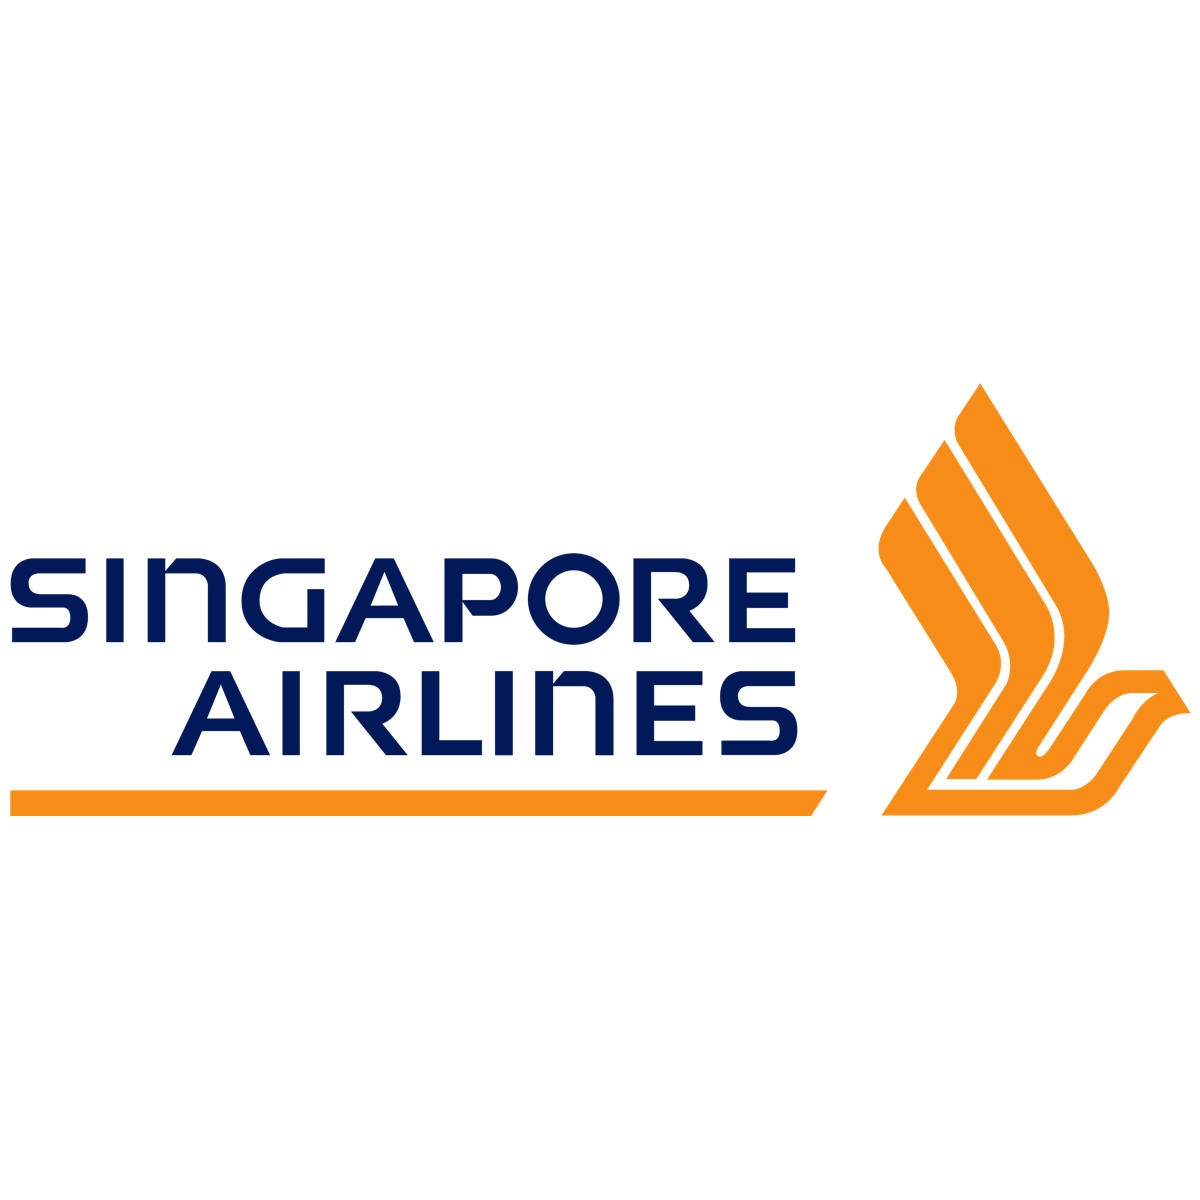 Singapore Airlines (SIA SP) - Maybank Kim Eng 2017-07-26: Yield Headwinds Will Lower 1Q18 Profit